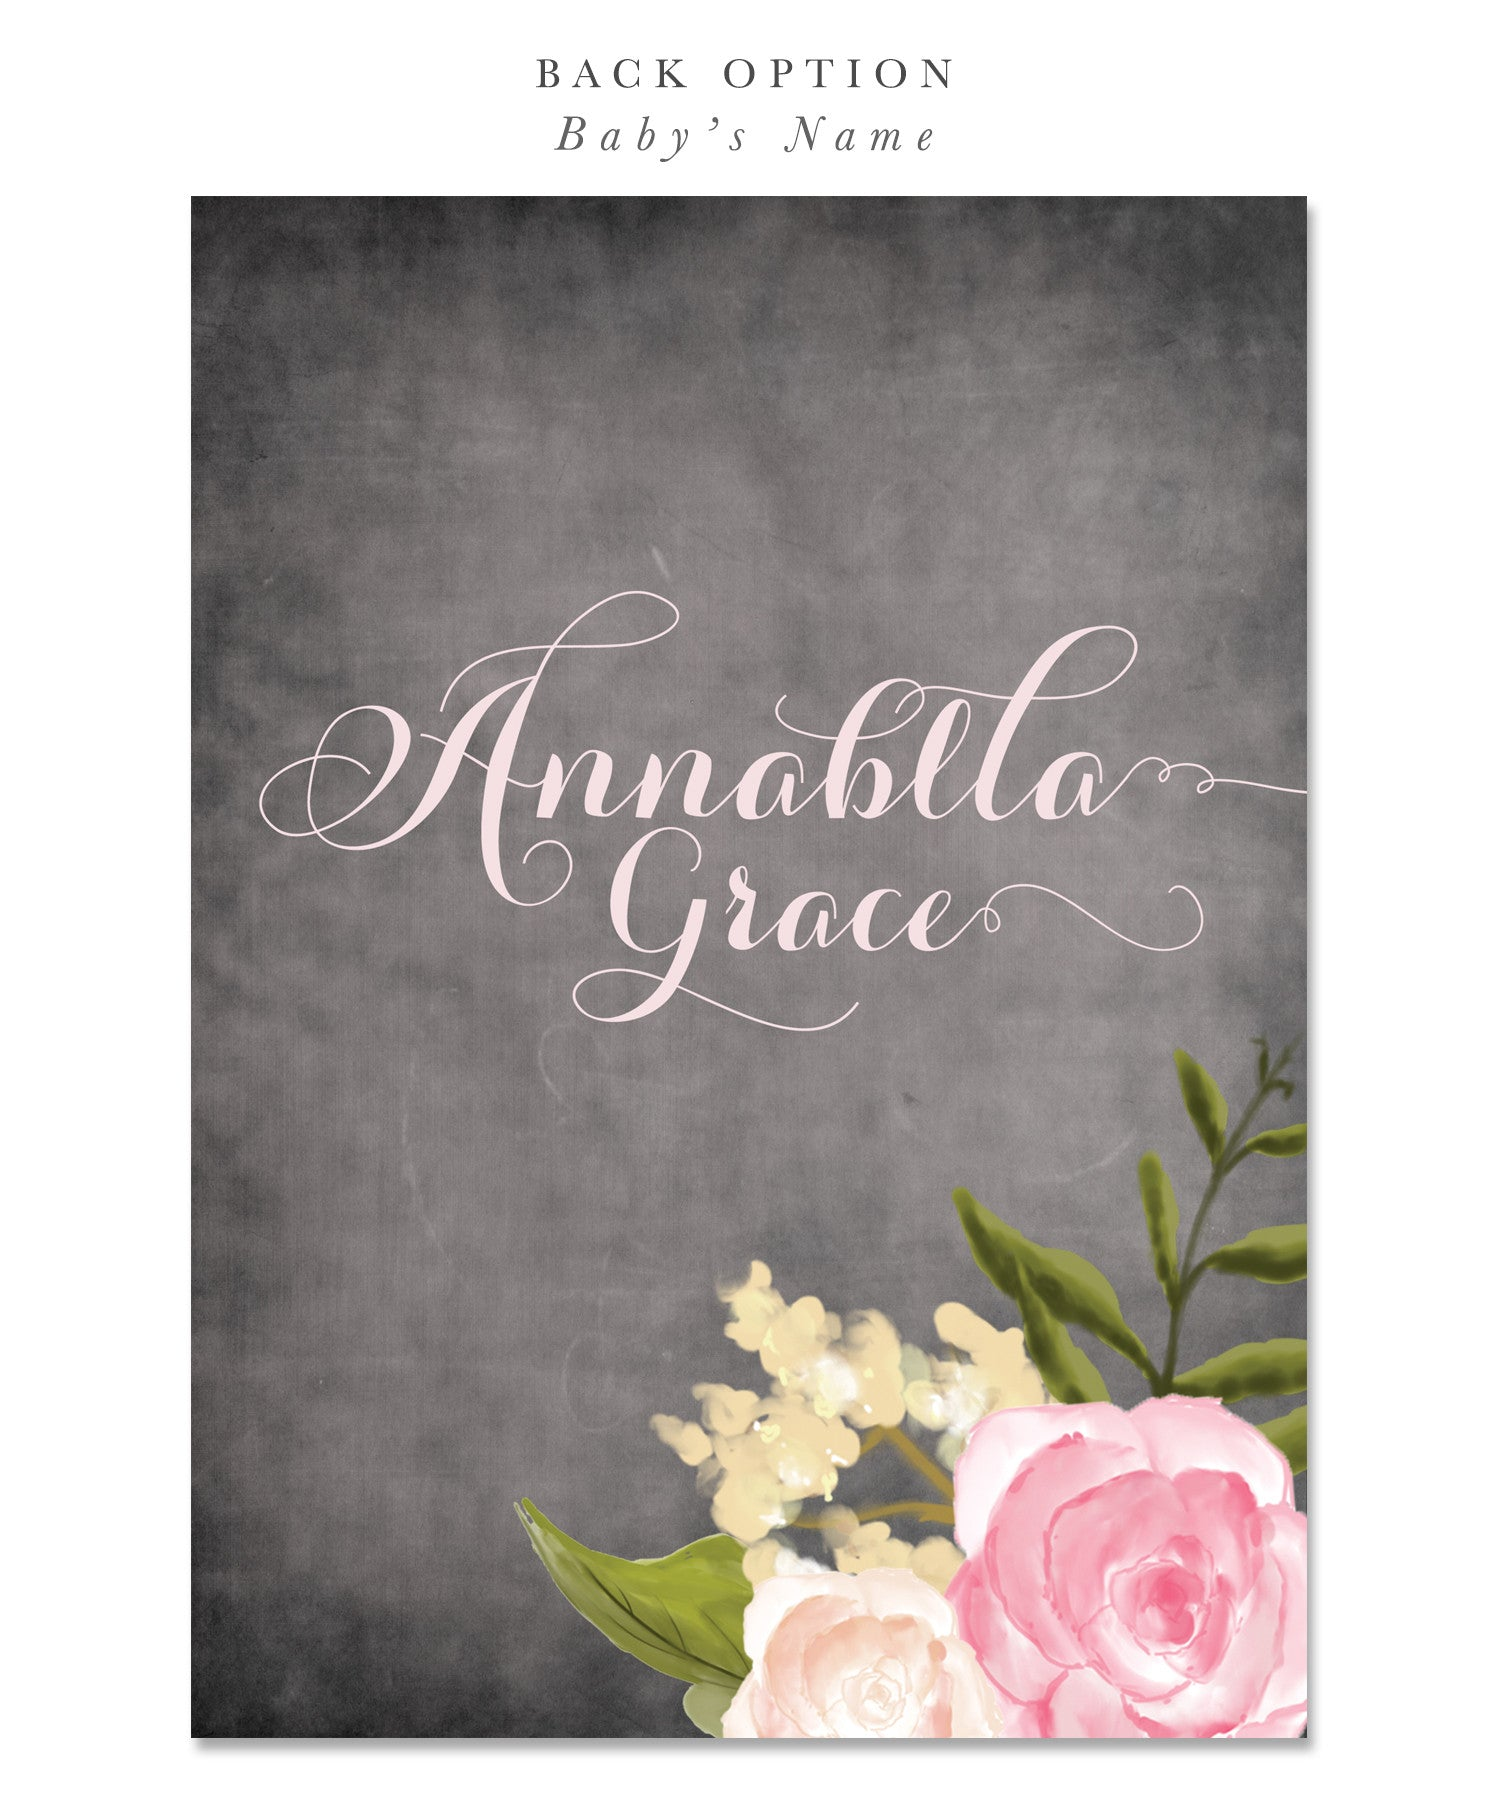 Emily Baby Shower Invitation Pink Roses Peonies Chalkboard